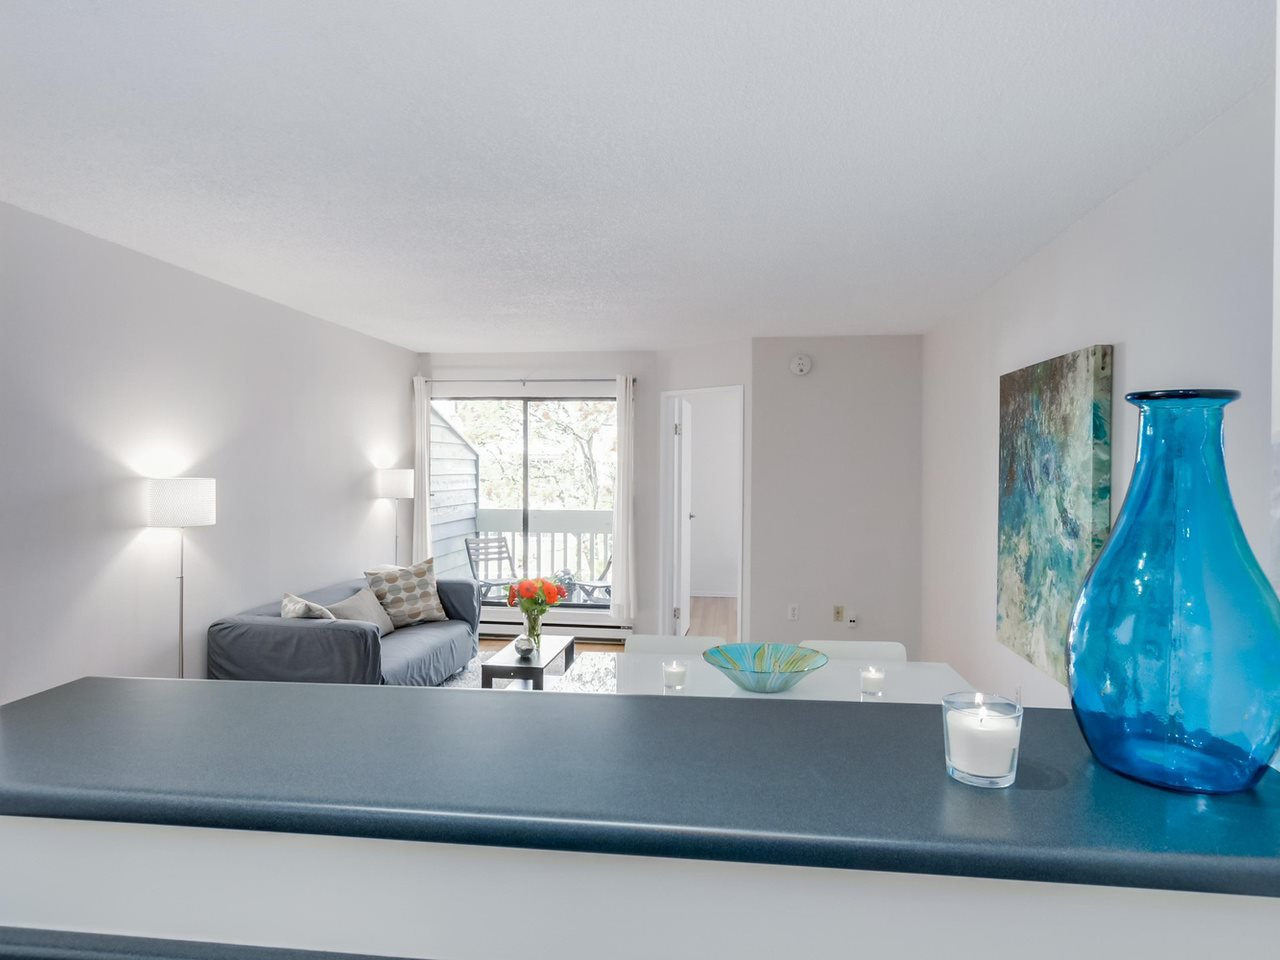 """Photo 11: Photos: 207 1545 E 2ND Avenue in Vancouver: Grandview VE Condo for sale in """"TALISHAN WOODS"""" (Vancouver East)  : MLS®# R2086466"""